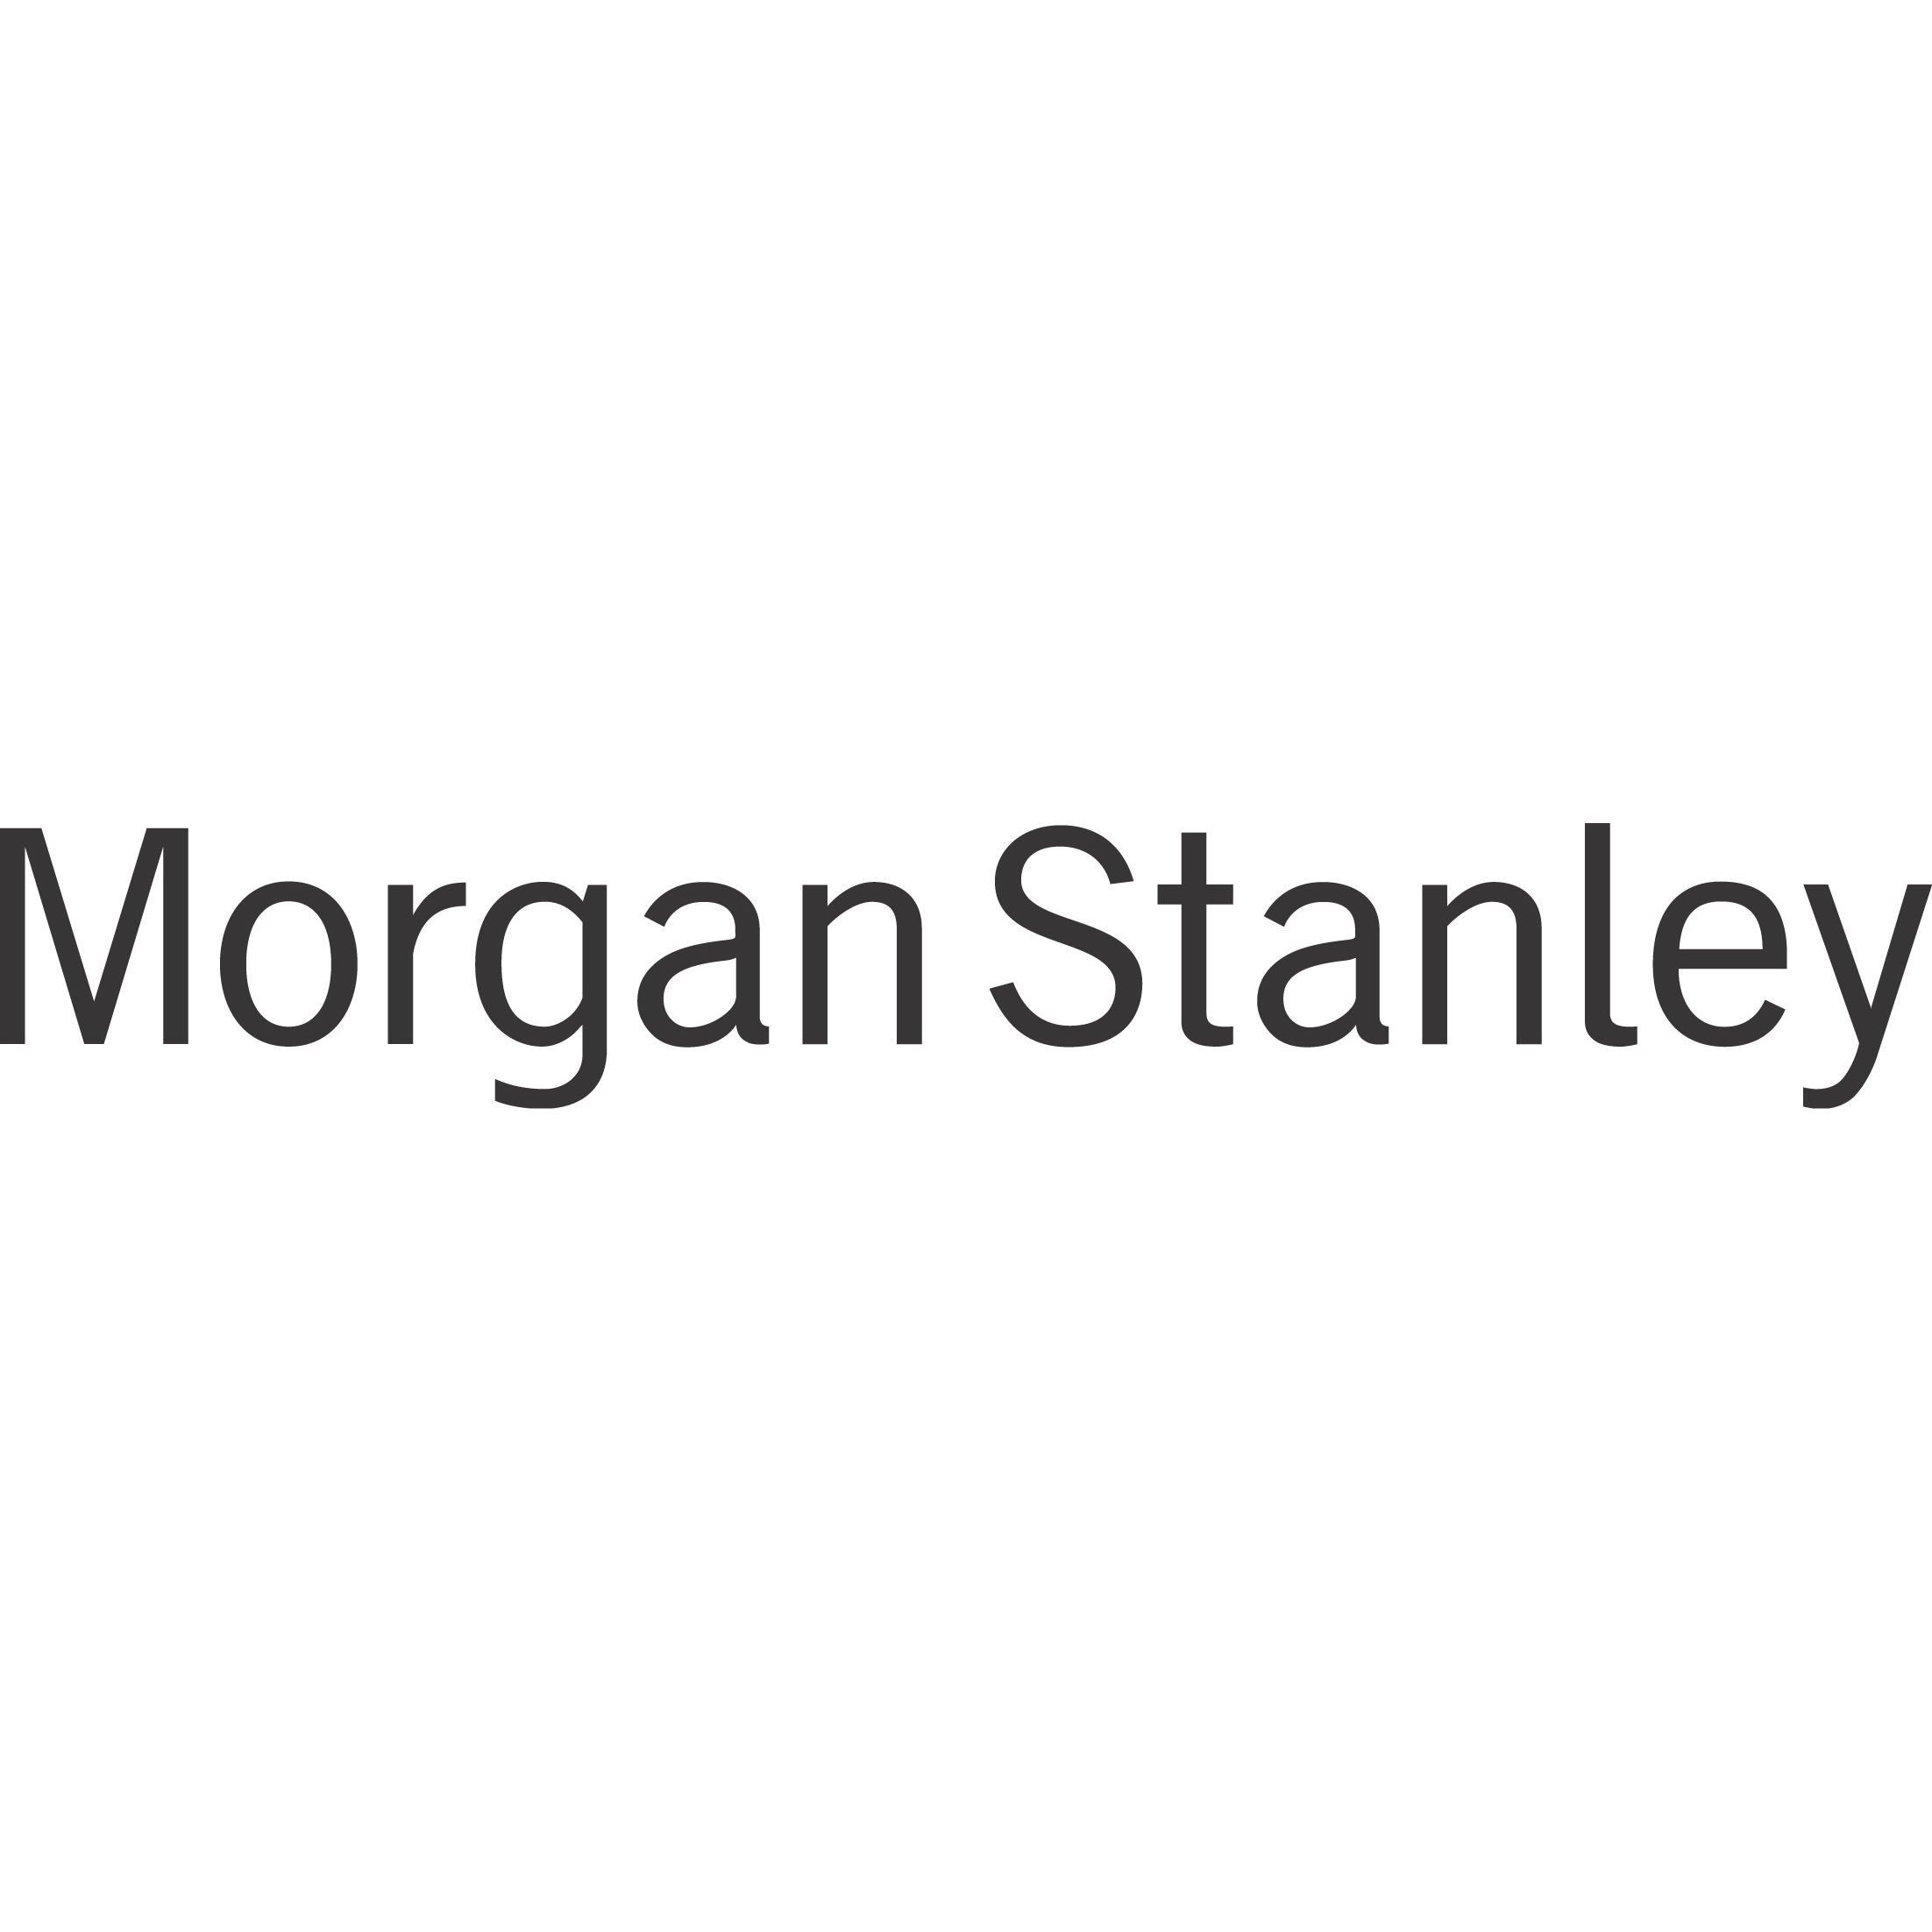 Michael A Robertson - Morgan Stanley | Financial Advisor in Greensboro,North Carolina